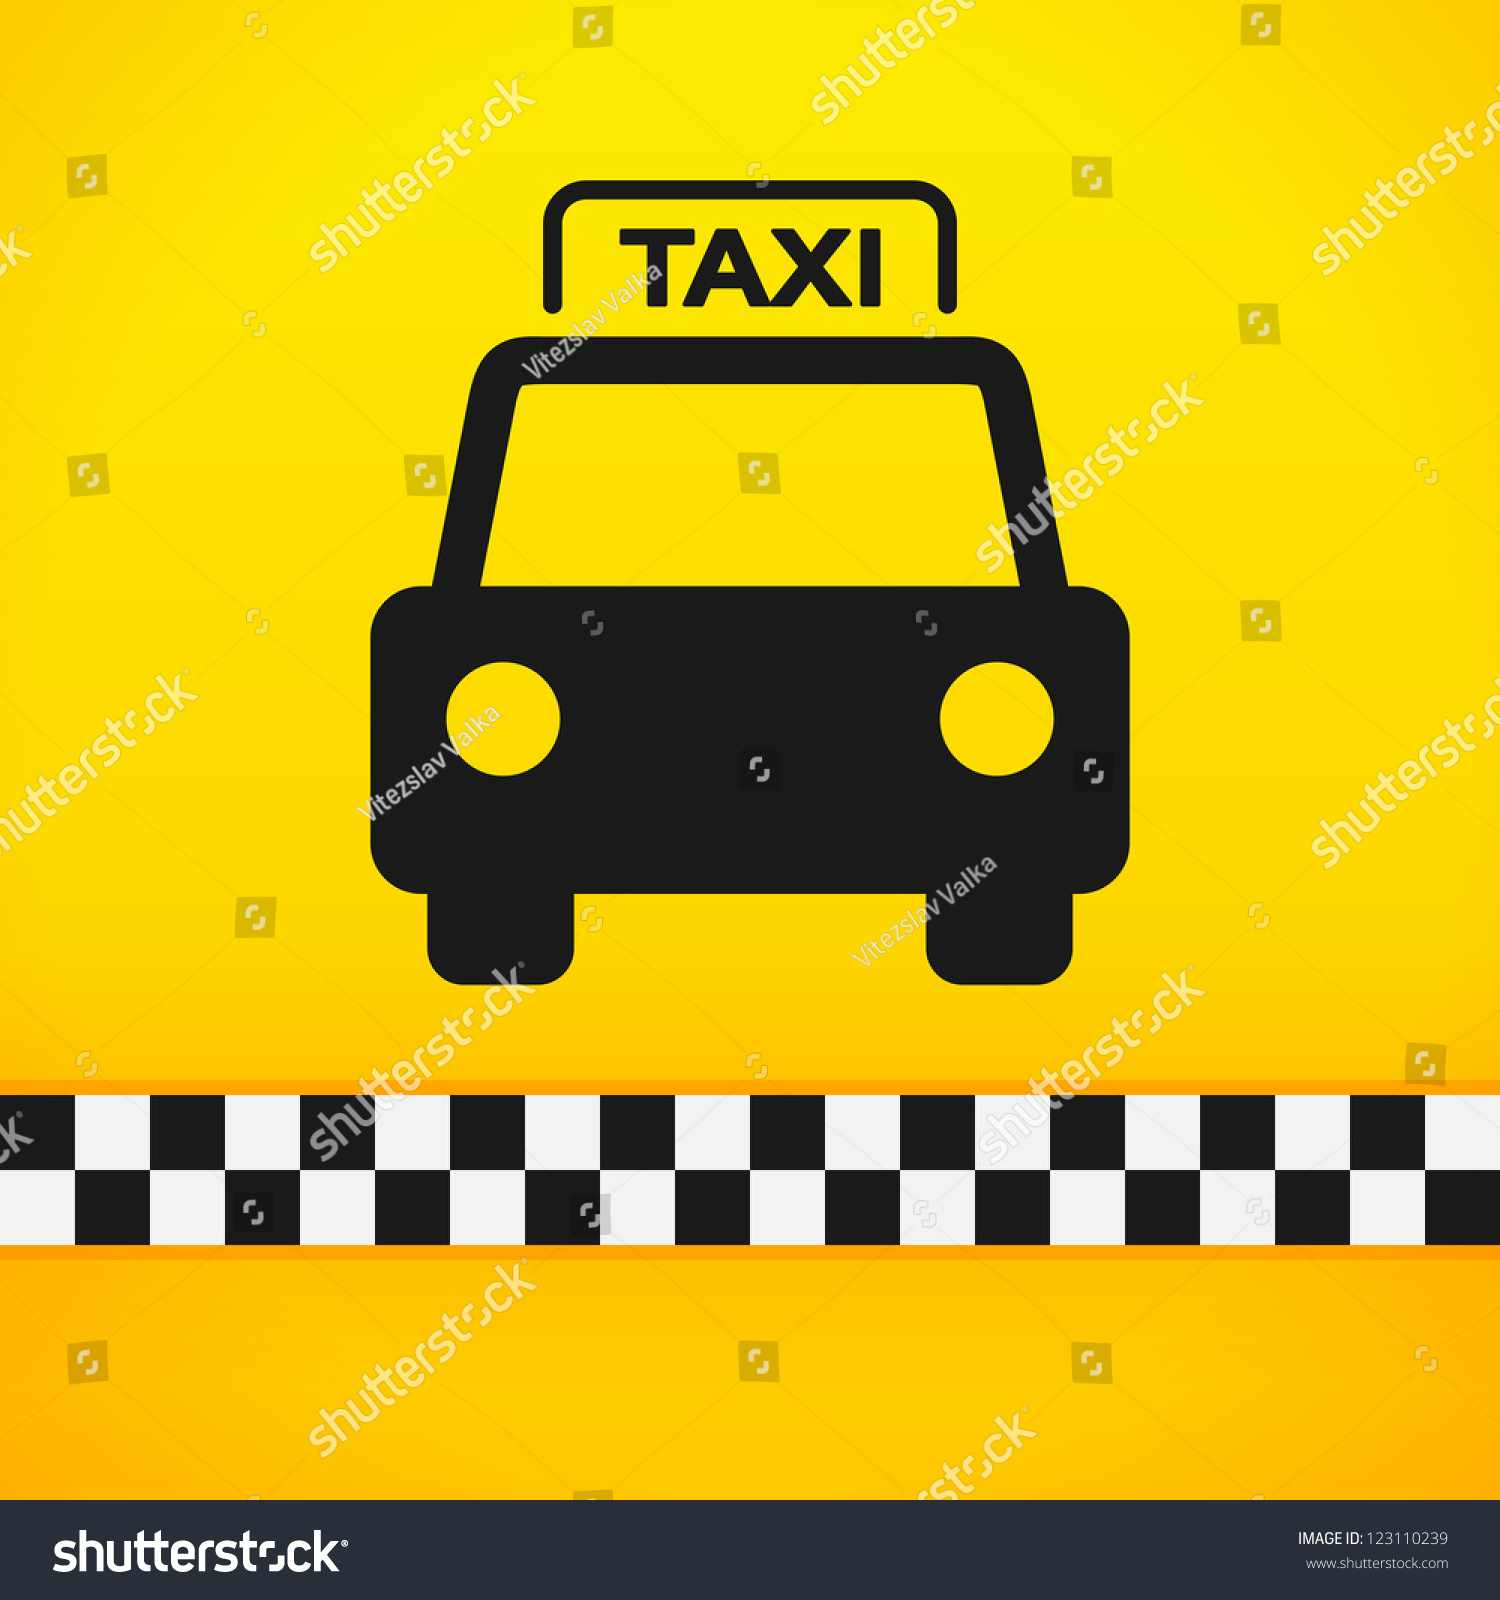 how to get yellow cab licence in new york